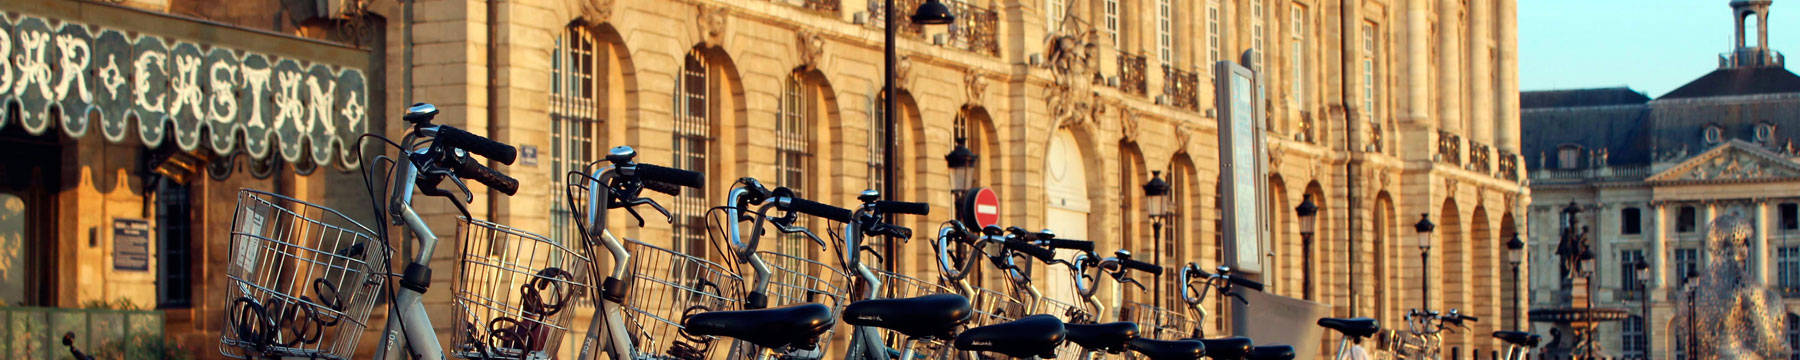 Find Bikes with FranceBikeHire.com